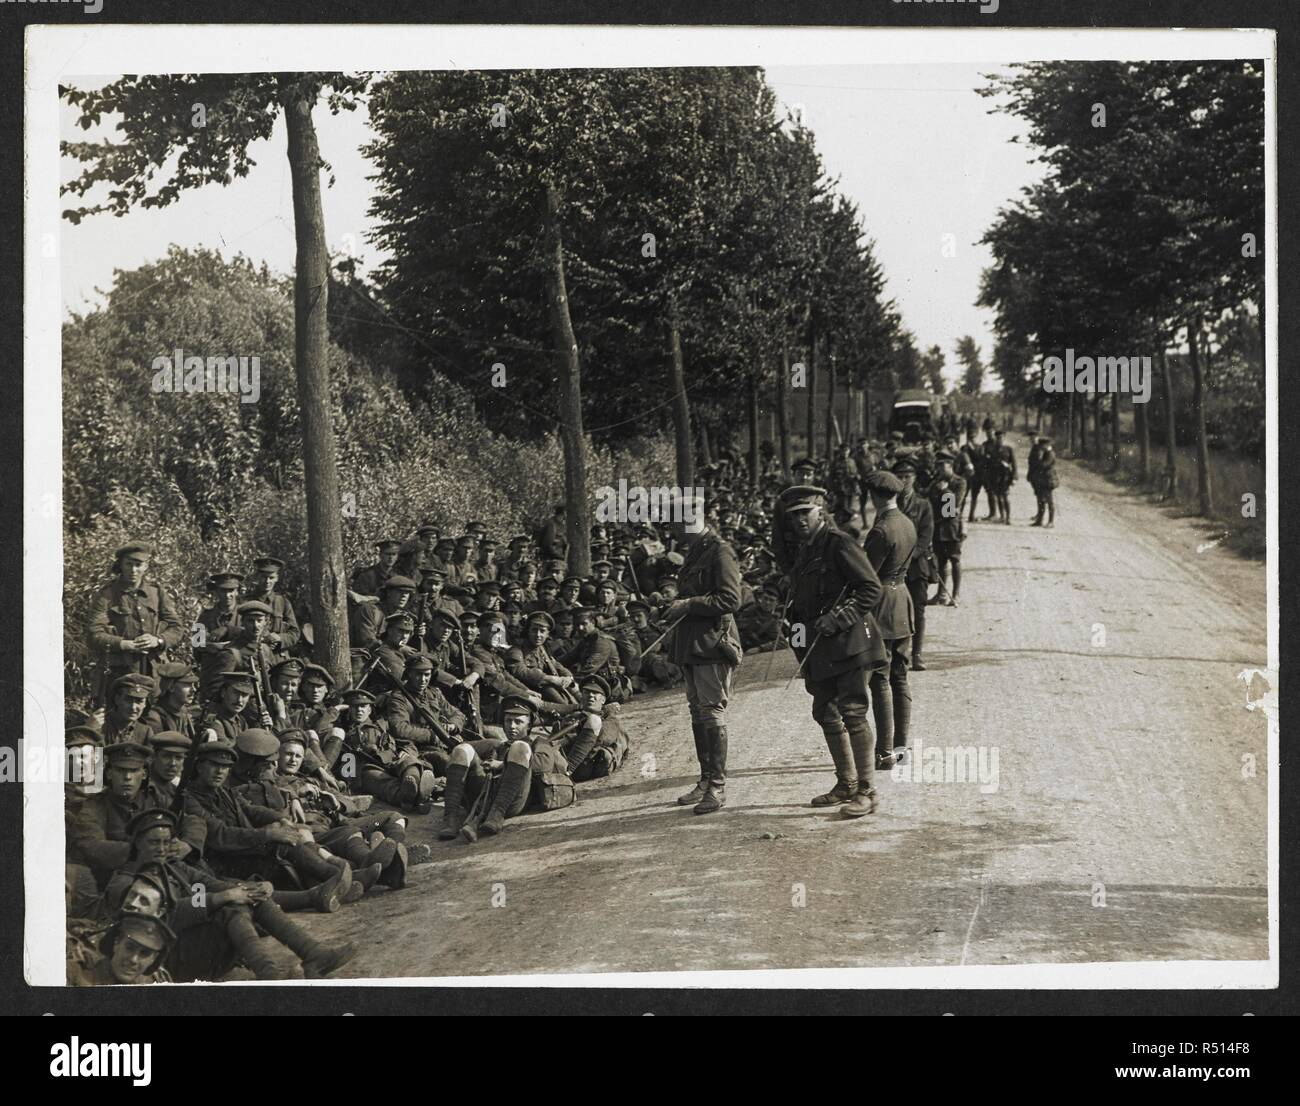 London Territorials resting on the march [Estaires La Bassée Road, France]. Men of the 3rd London Regiment resting by the roadside. 4 August 1915. Record of the Indian Army in Europe during the First World War. 20th century, 1915. Gelatin silver prints. Source: Photo 24/(235). Author: Girdwood, H. D. - Stock Image